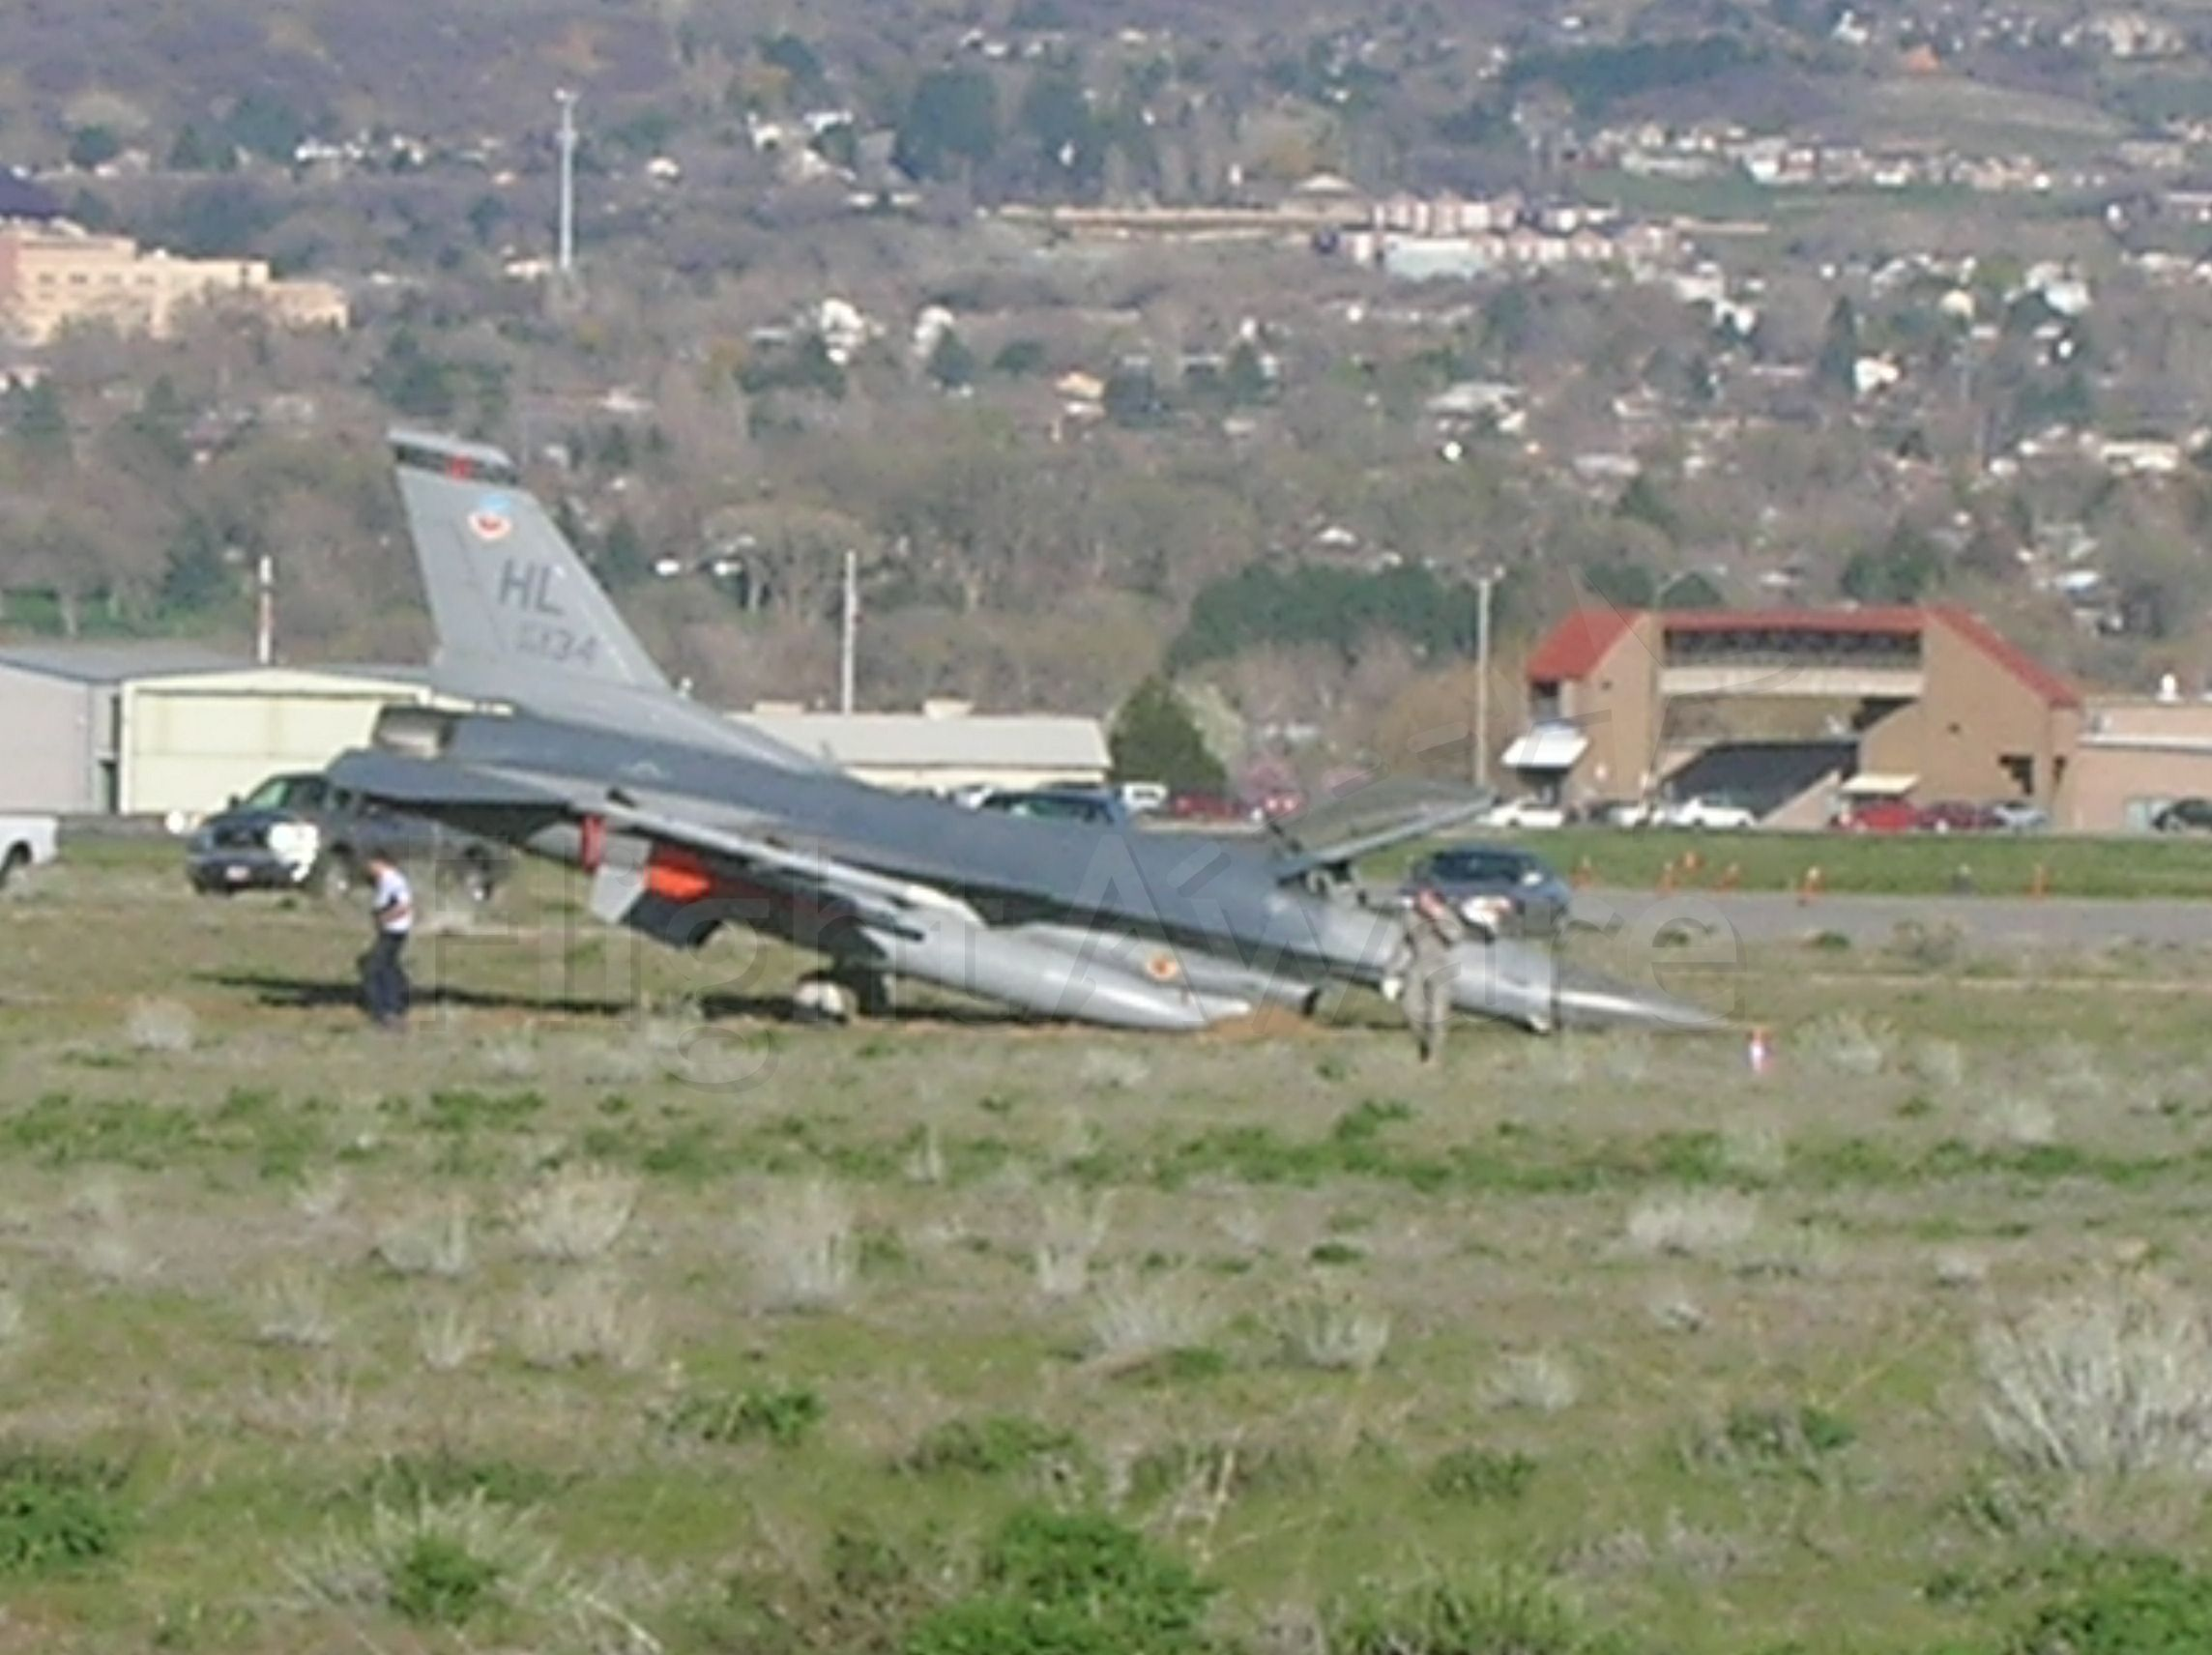 Lockheed F-16 Fighting Falcon (AWEF) - Tail Number: 89-134  Over ran RWY 21 on landing.  Bad day, lots of paperwork ahead!